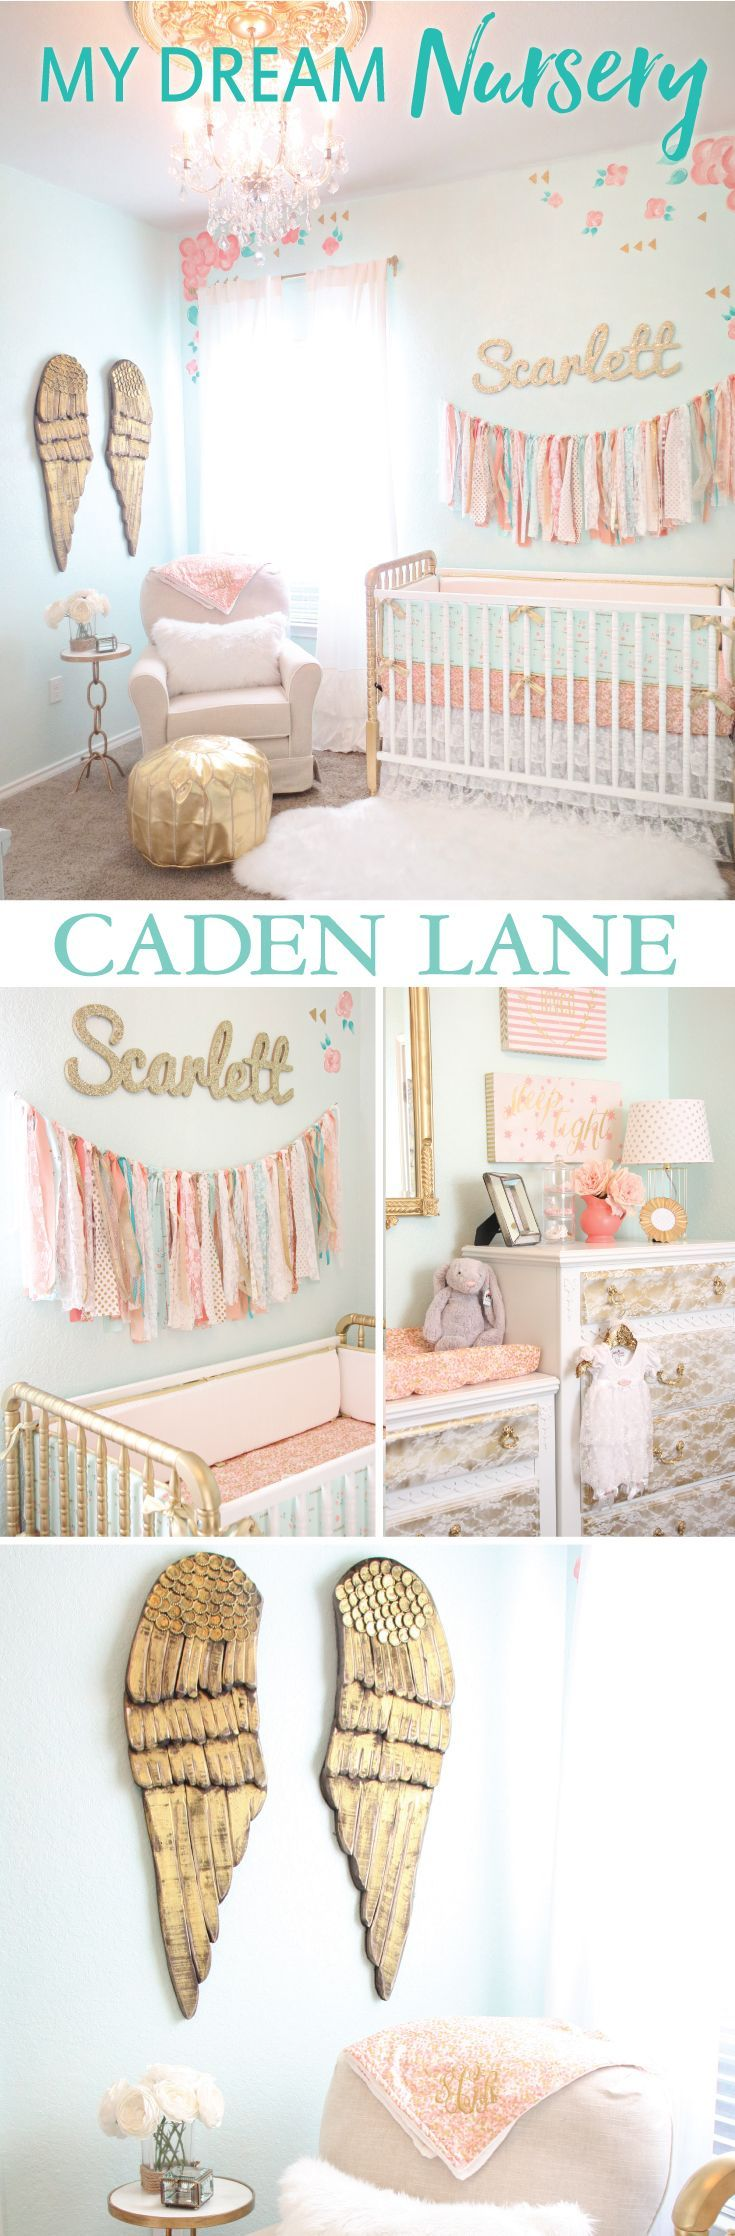 92 best images about nursery on Pinterest | Closet organization ...